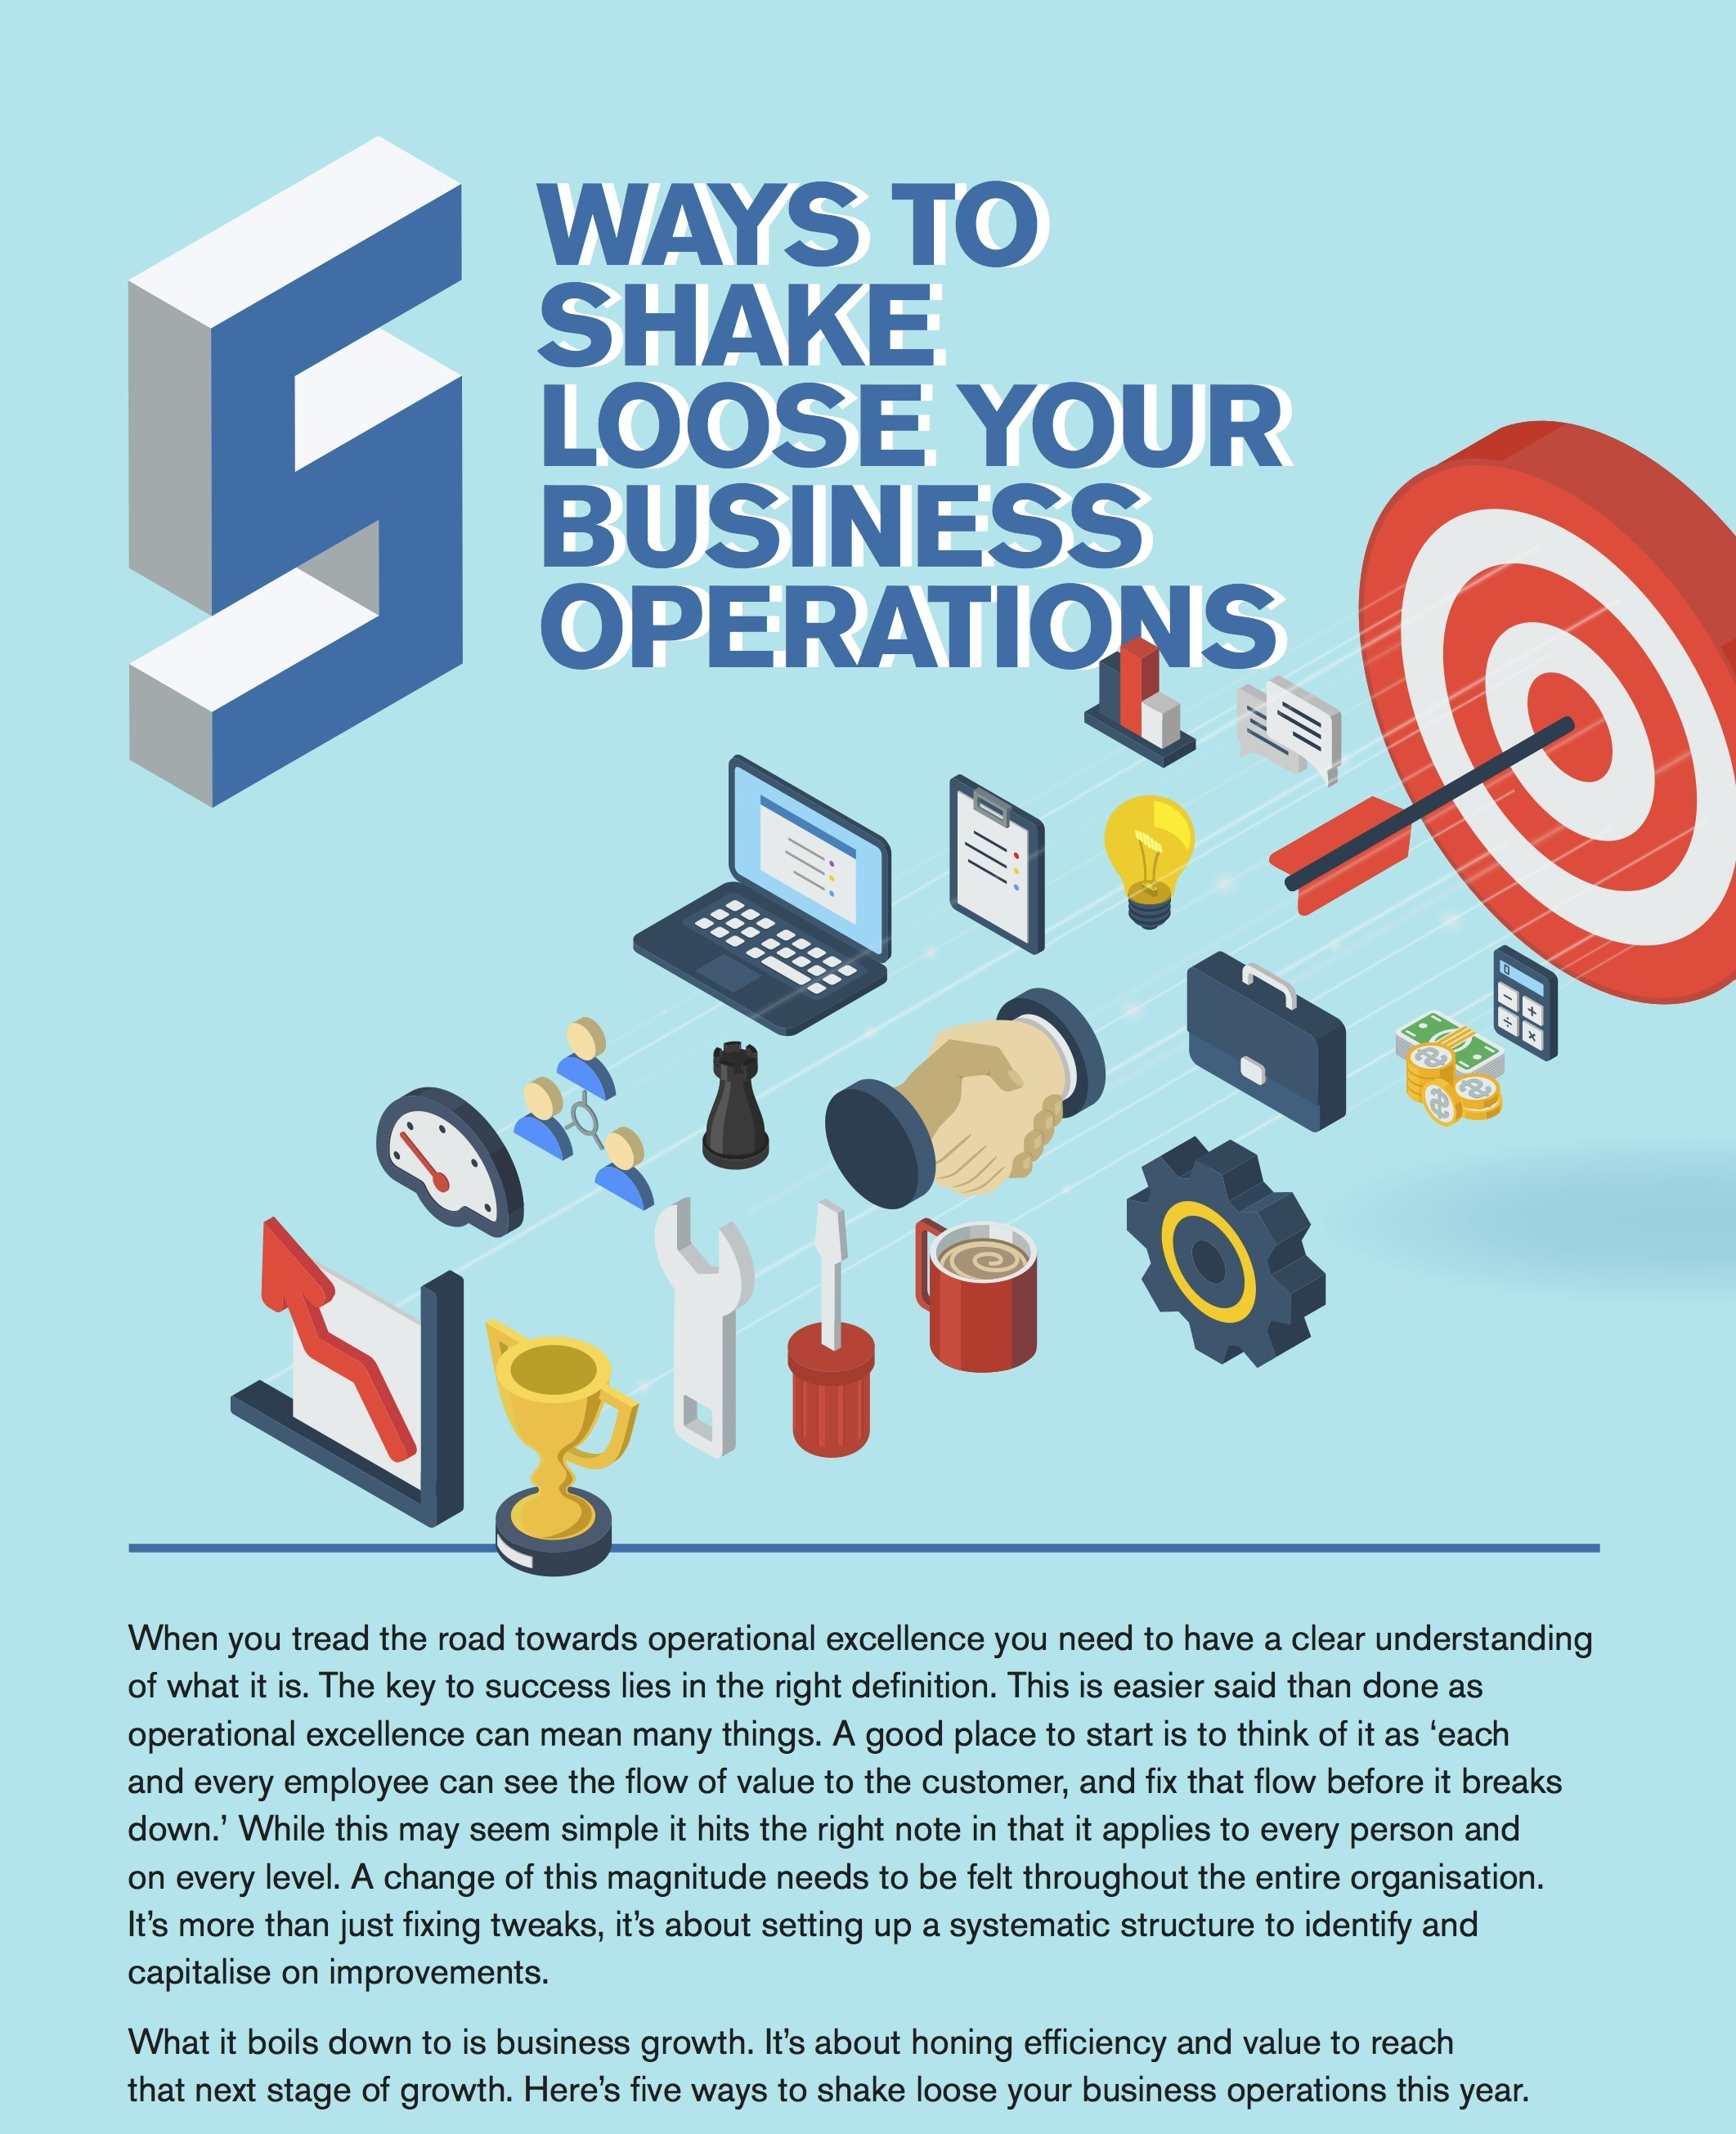 Five Ways You Can Shake Loose Your Business Operations